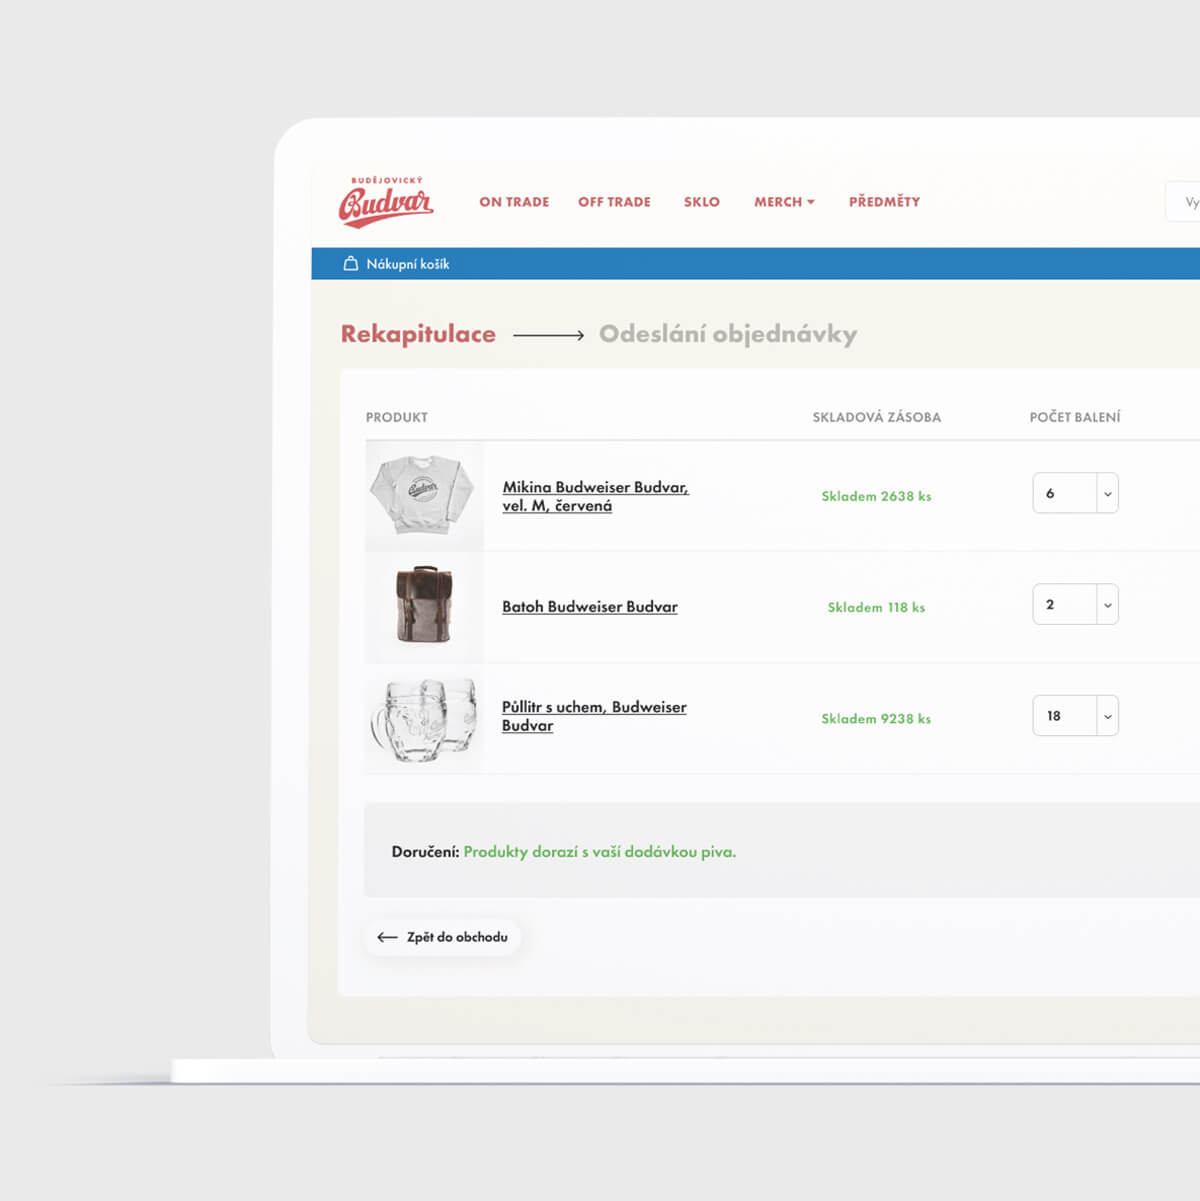 User interface of the purchase process